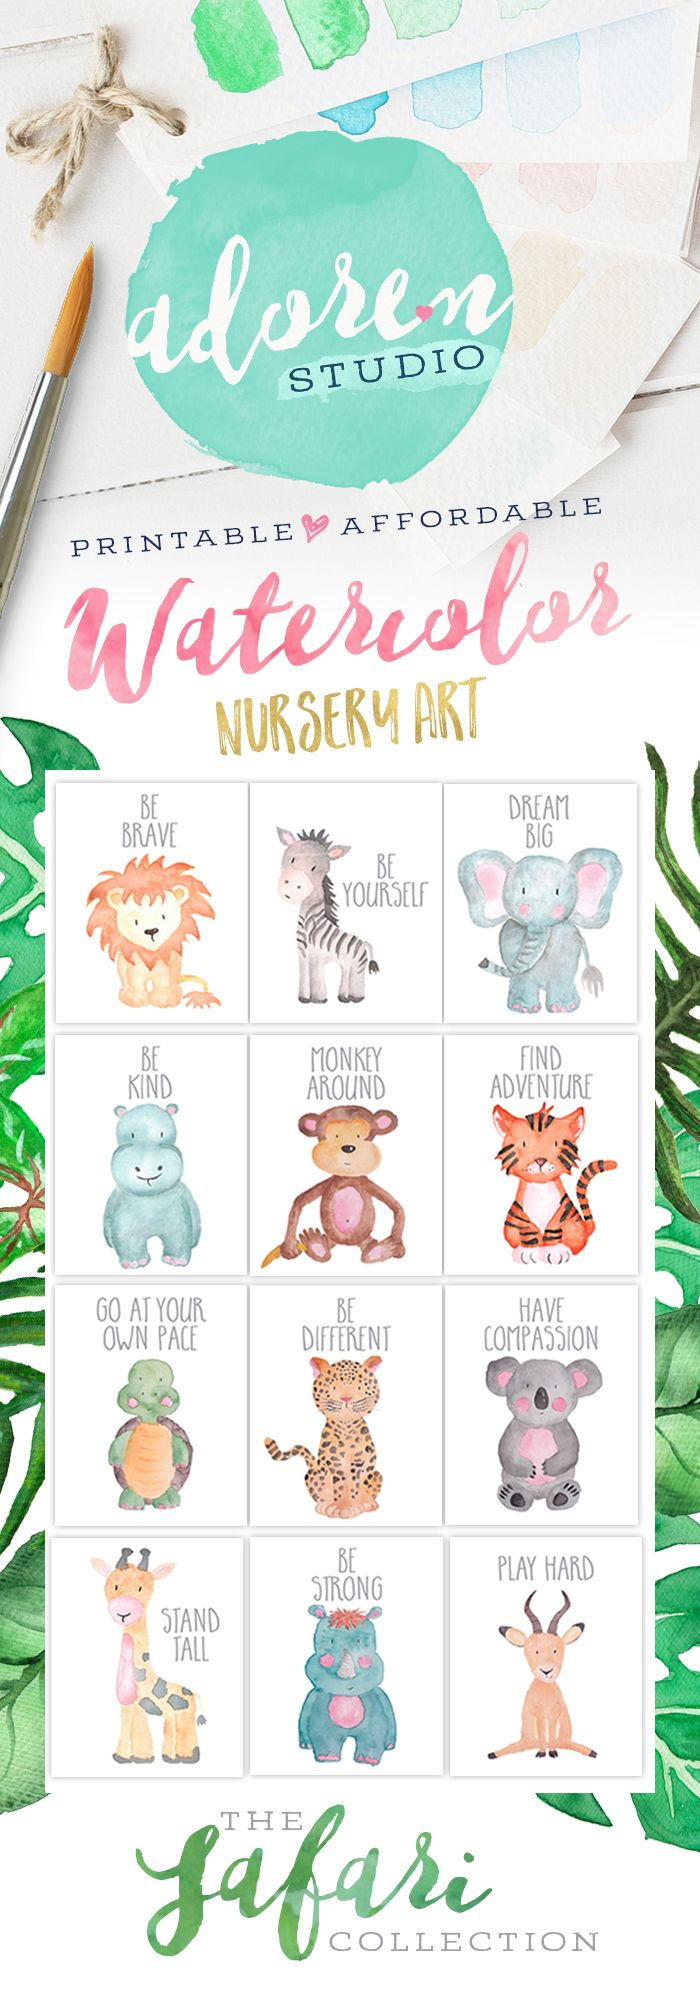 The Safari Collection by Adoren Studio!  Adorable baby animal nursery art!  Create your own set of adorable animals with encouraging words or buy them all - choose from a lion, zebra, elephant, hippo, monkey, tiger, turtle, leopard, koala, giraffe, rhino and antelope!  #NurseryPrintables